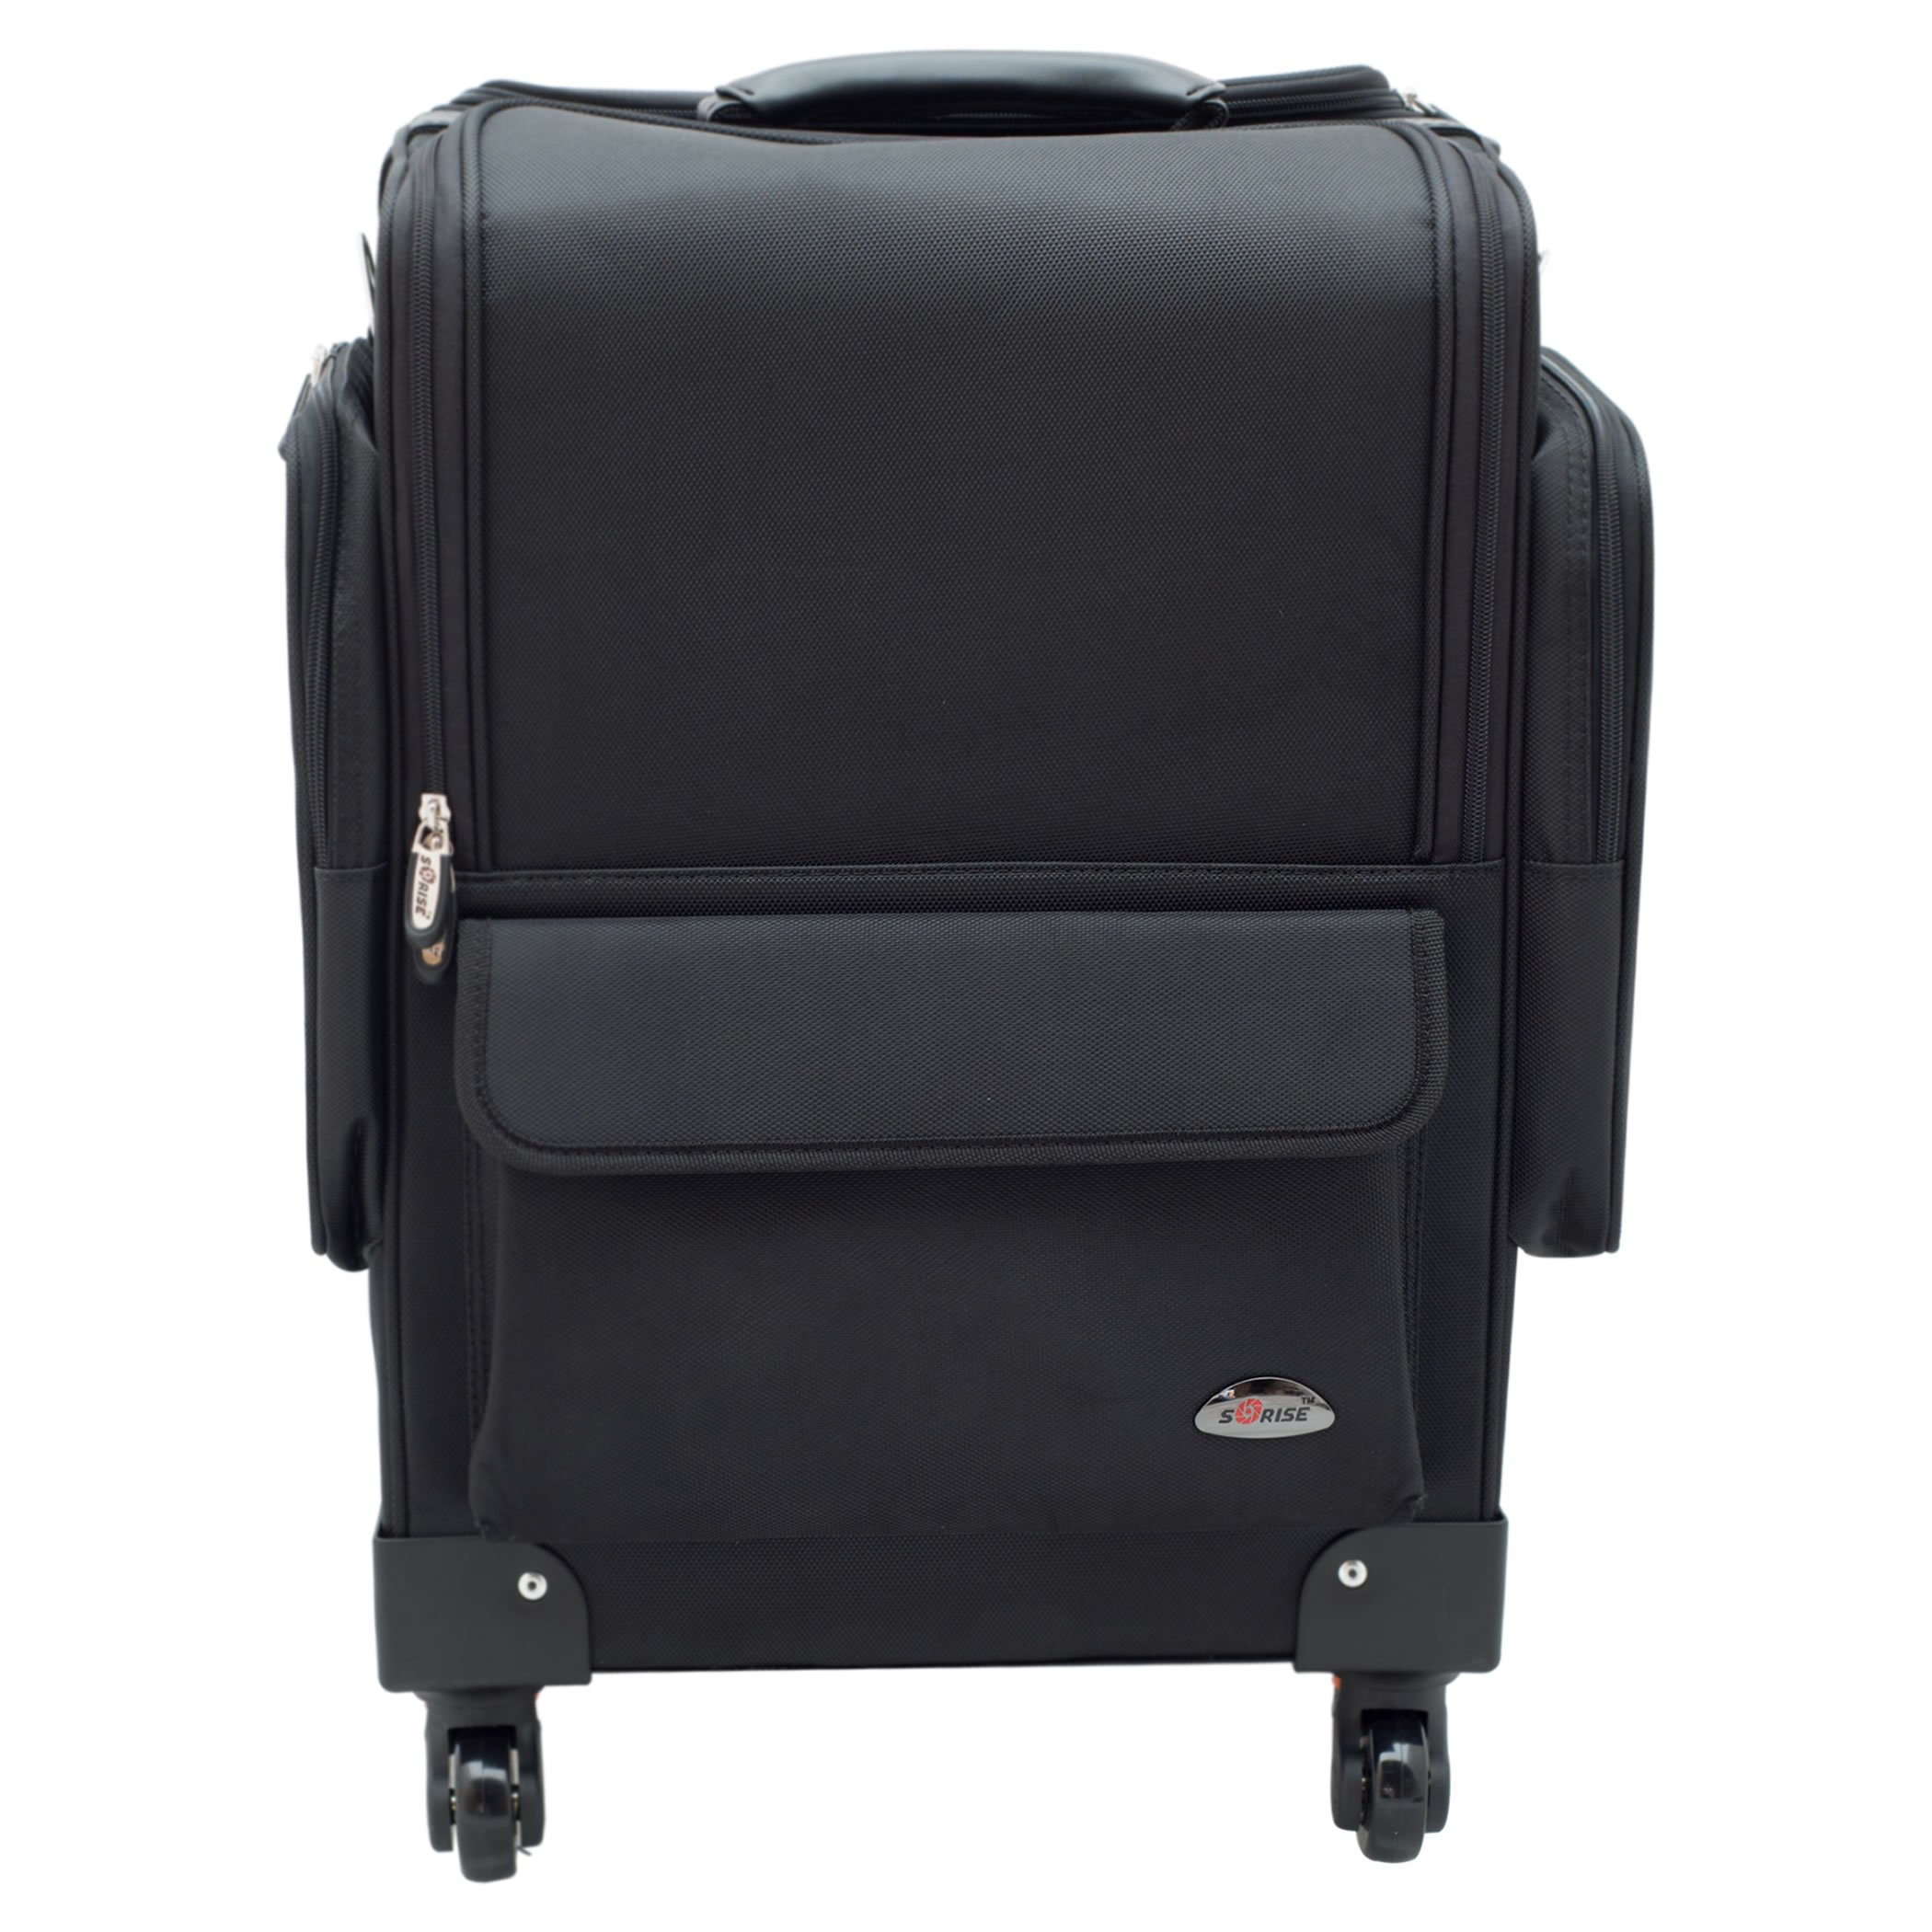 SUNRISE Soft Makeup Case on Wheels C6403 Professional Storage, 4 Wheel Spinner, 8 Trays with Adjustable Dividers, Outside Pockets, Black Nylon